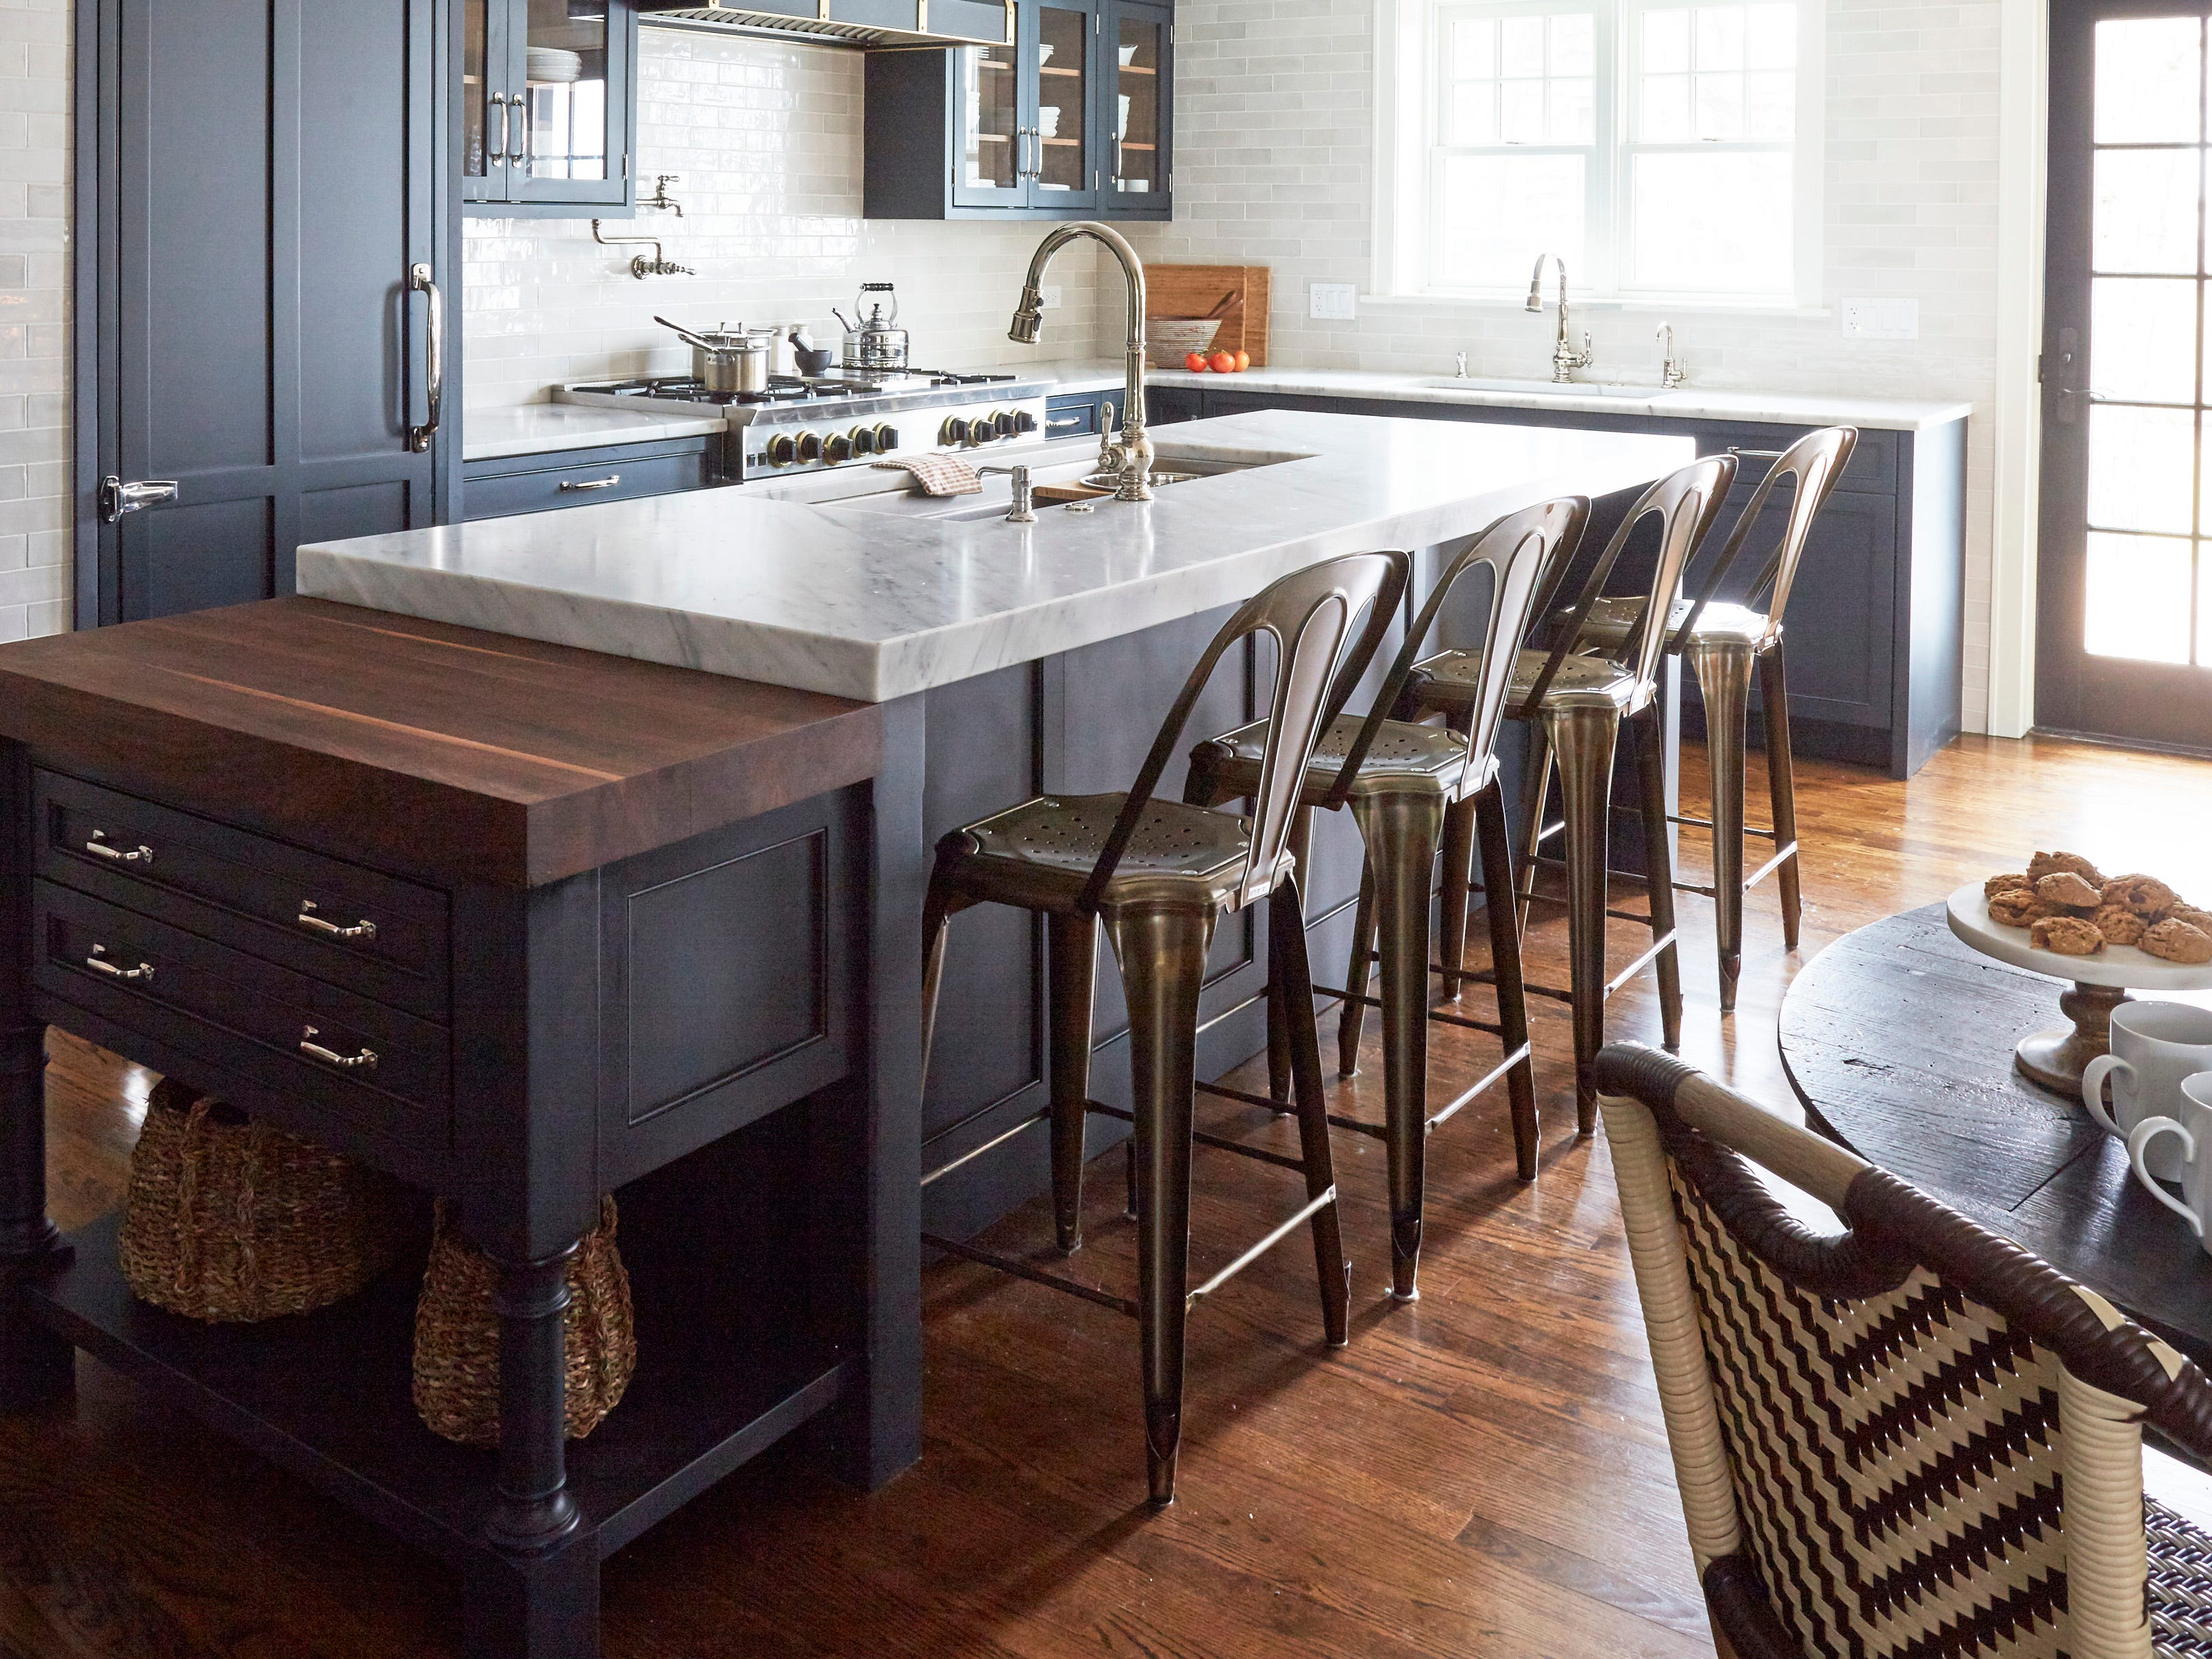 This multipurpose island for family of cooks is painted in BM Inkwell, with a galley sink and two faucets and a lower-level island in walnut for dedicated prep, with a cutting board.